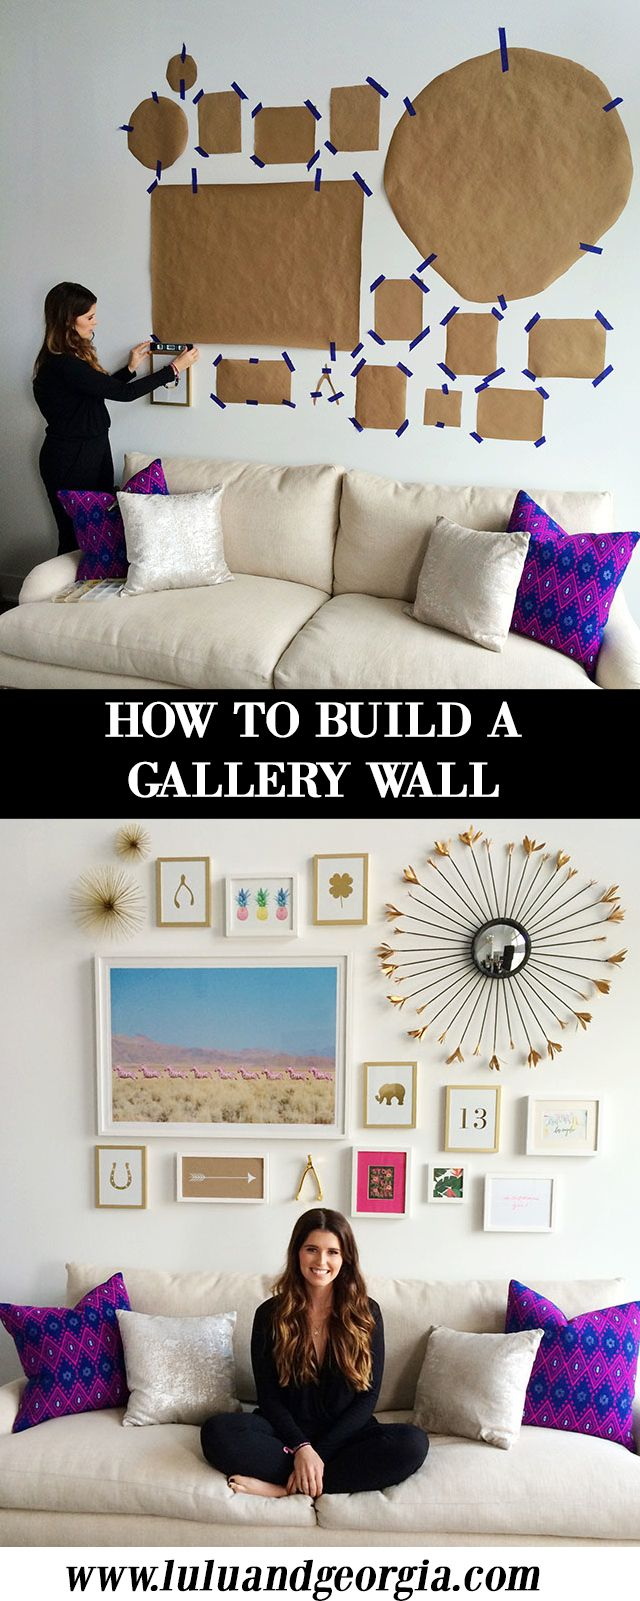 HOW TO: Building a Gallery